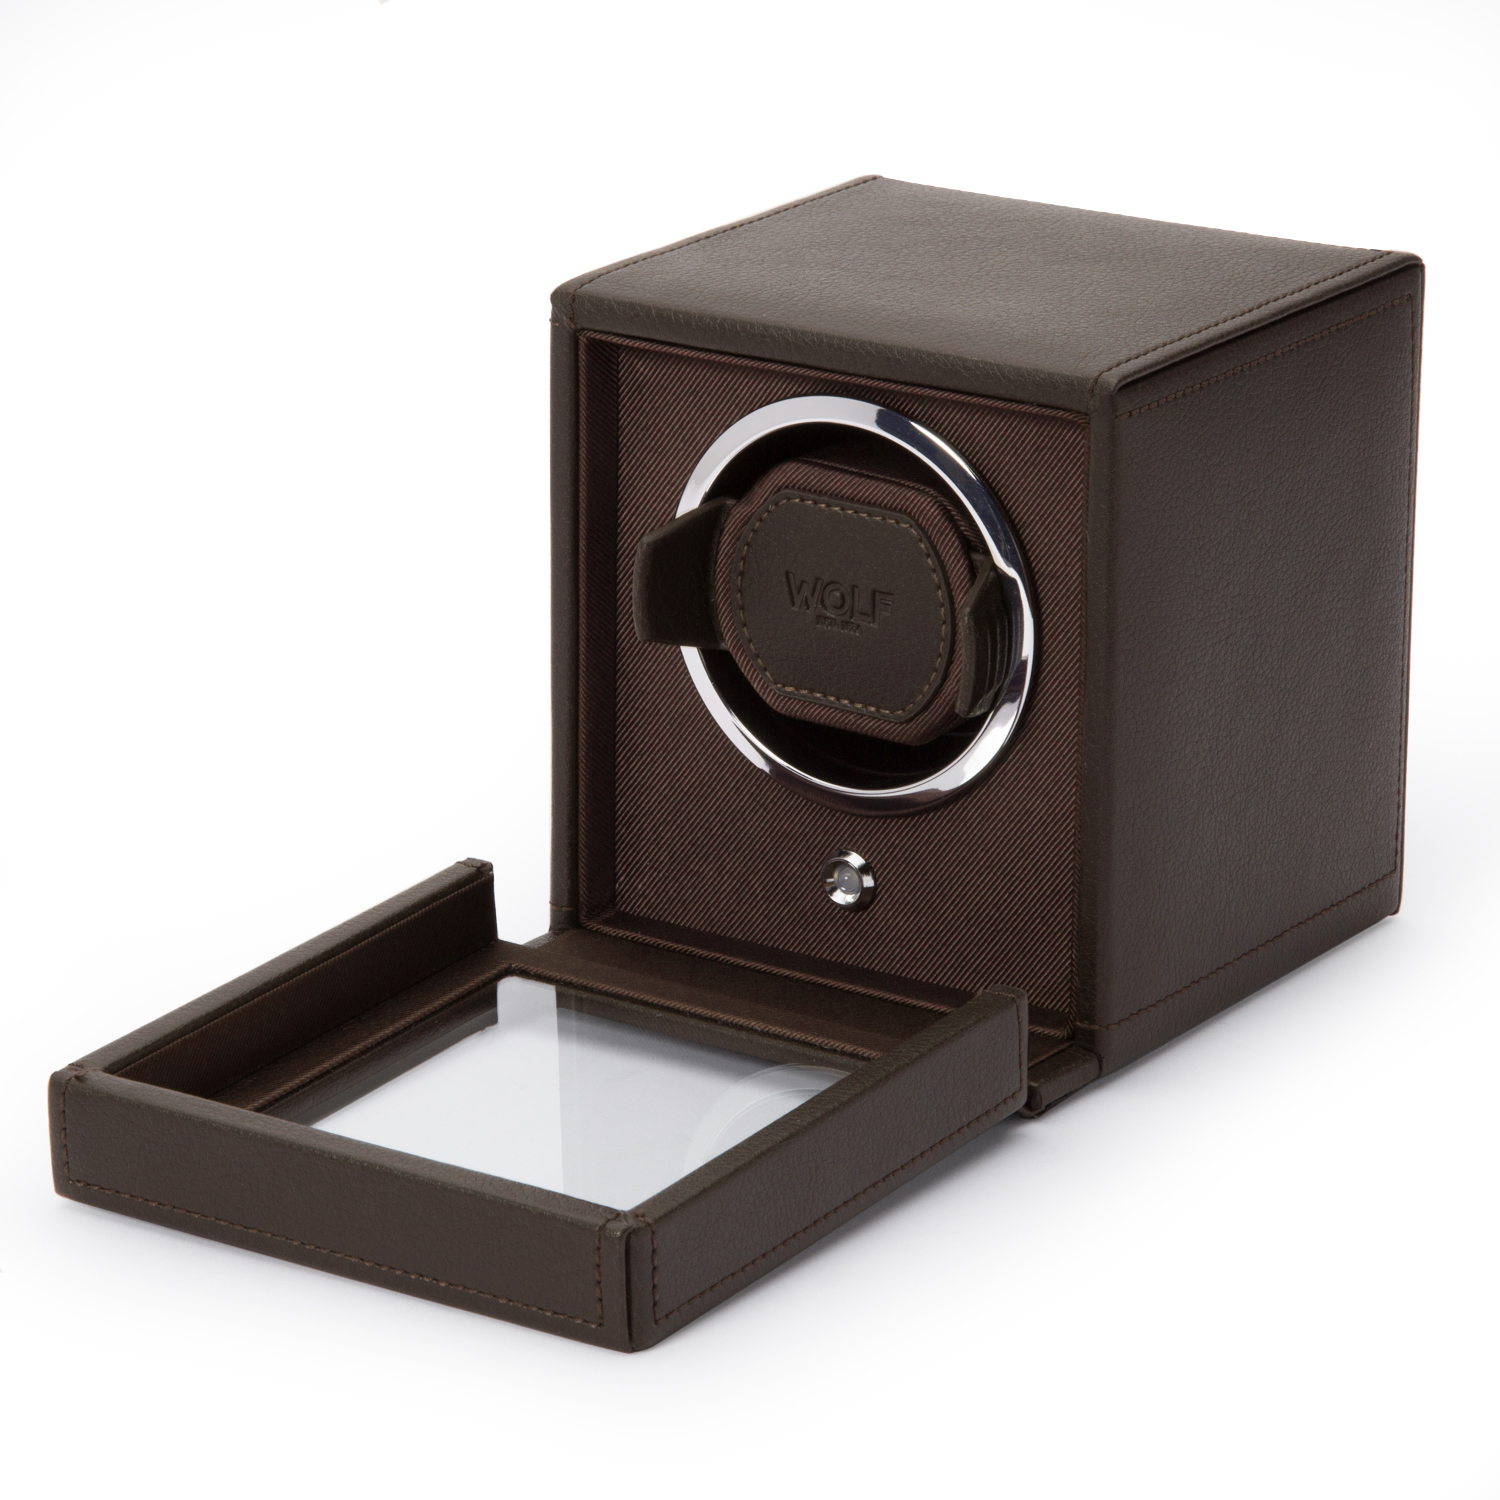 WOLF Cub Single Watch Winder w Cover in Brown